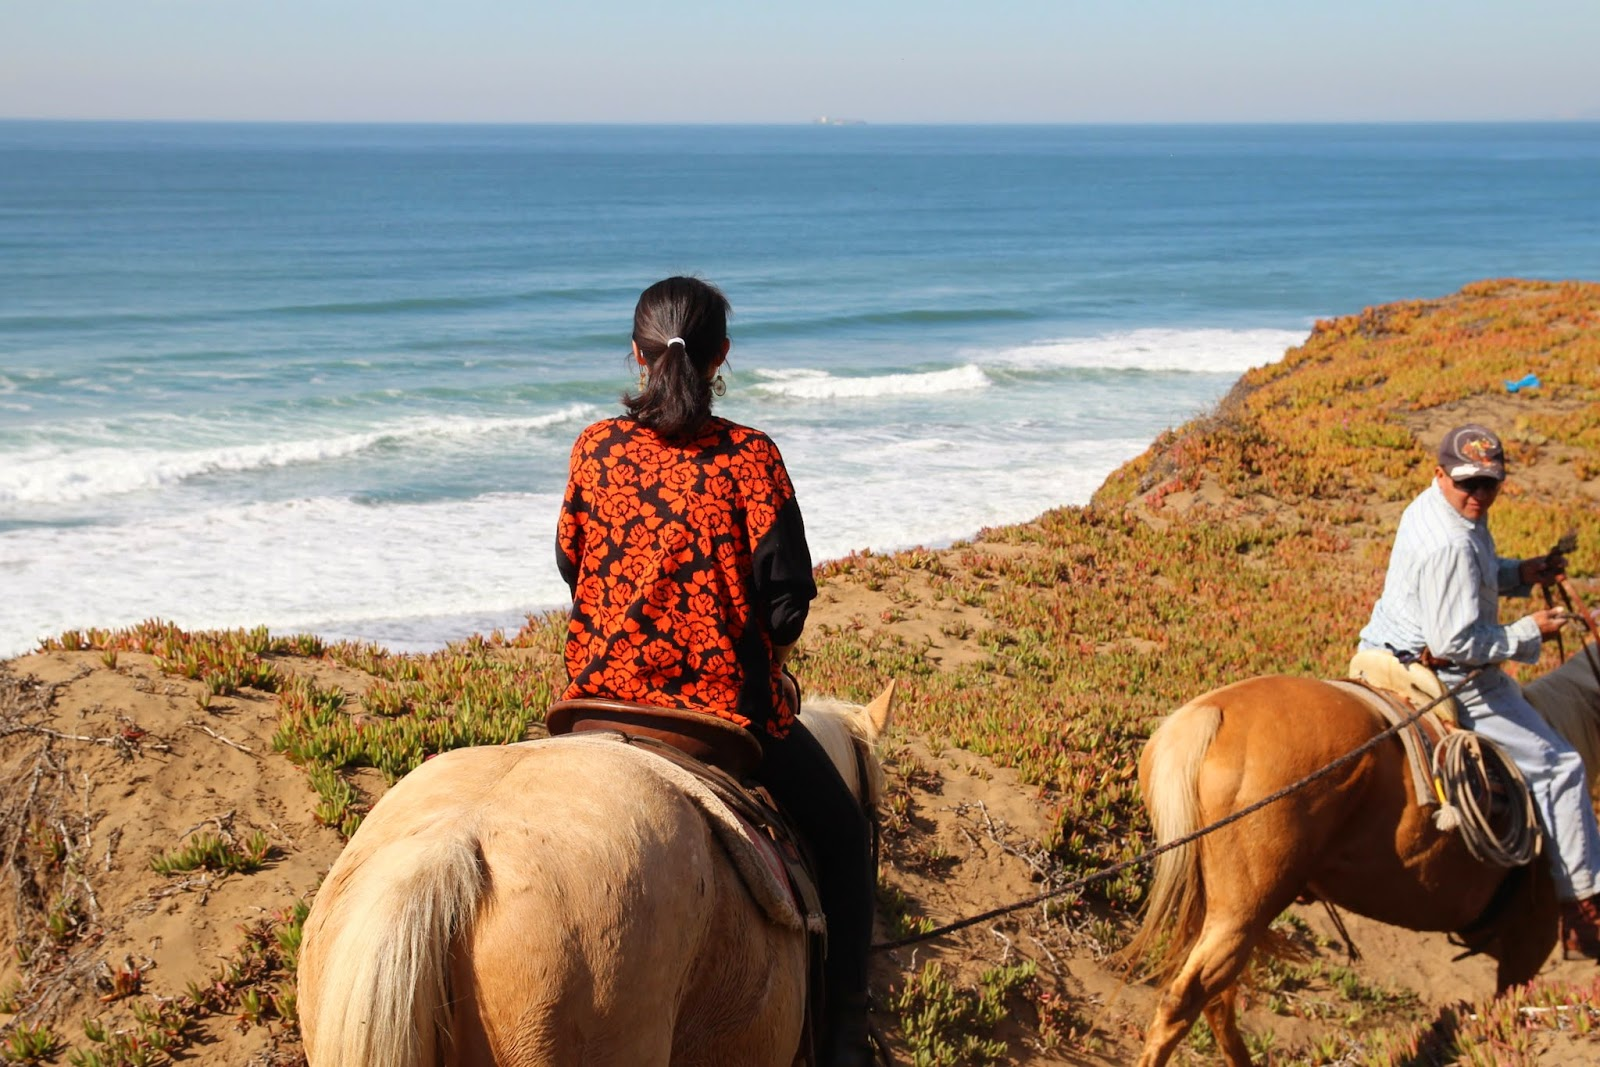 Finally We Arrived At The Beach It Was Absolutely Fantastic Experience Riding A Horse Nice My Wife Scared So Our Wrangler Put Some Ropes